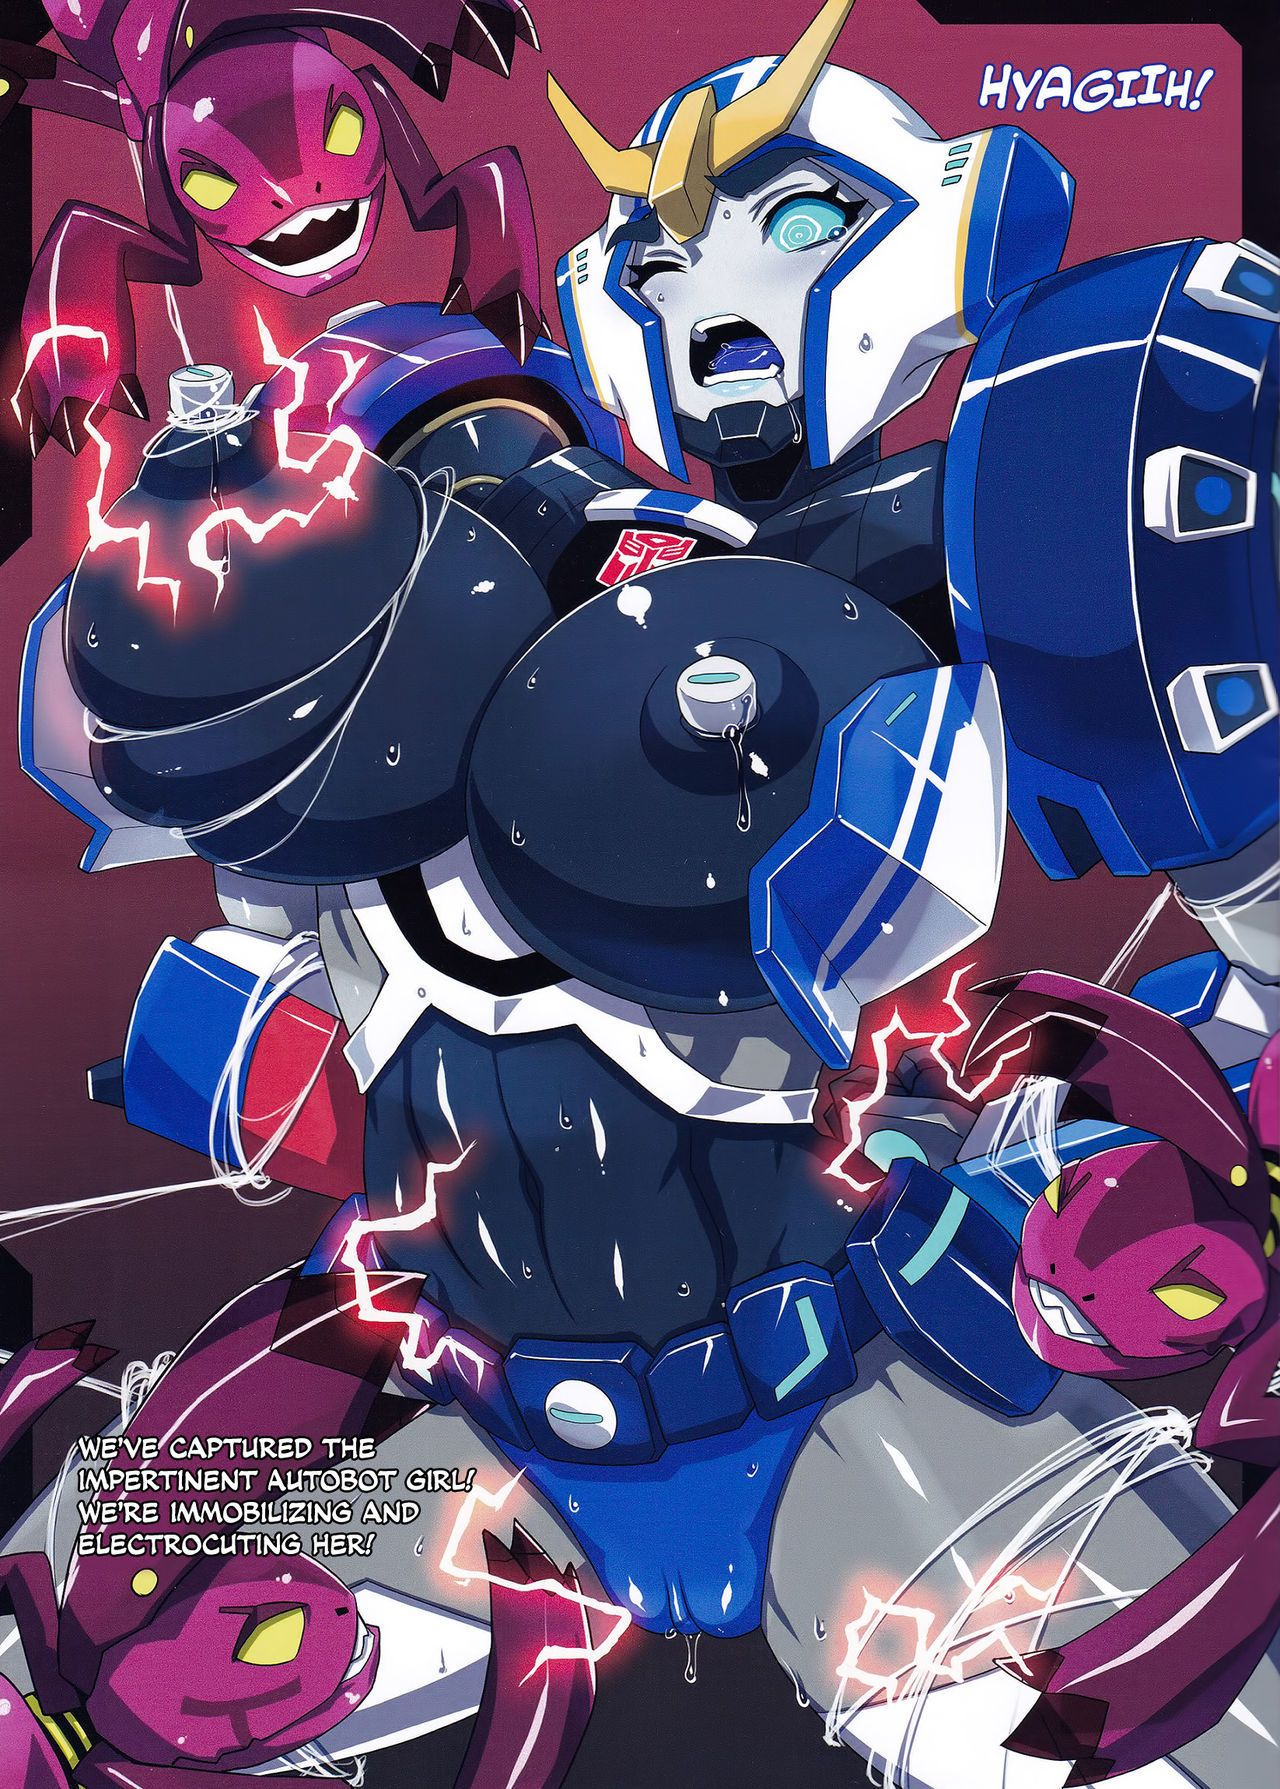 (COMIC1☆9) Choujikuu Yousai Kachuusha (Denki Shougun) Strong Girls (Transformers) =TLL + CW=